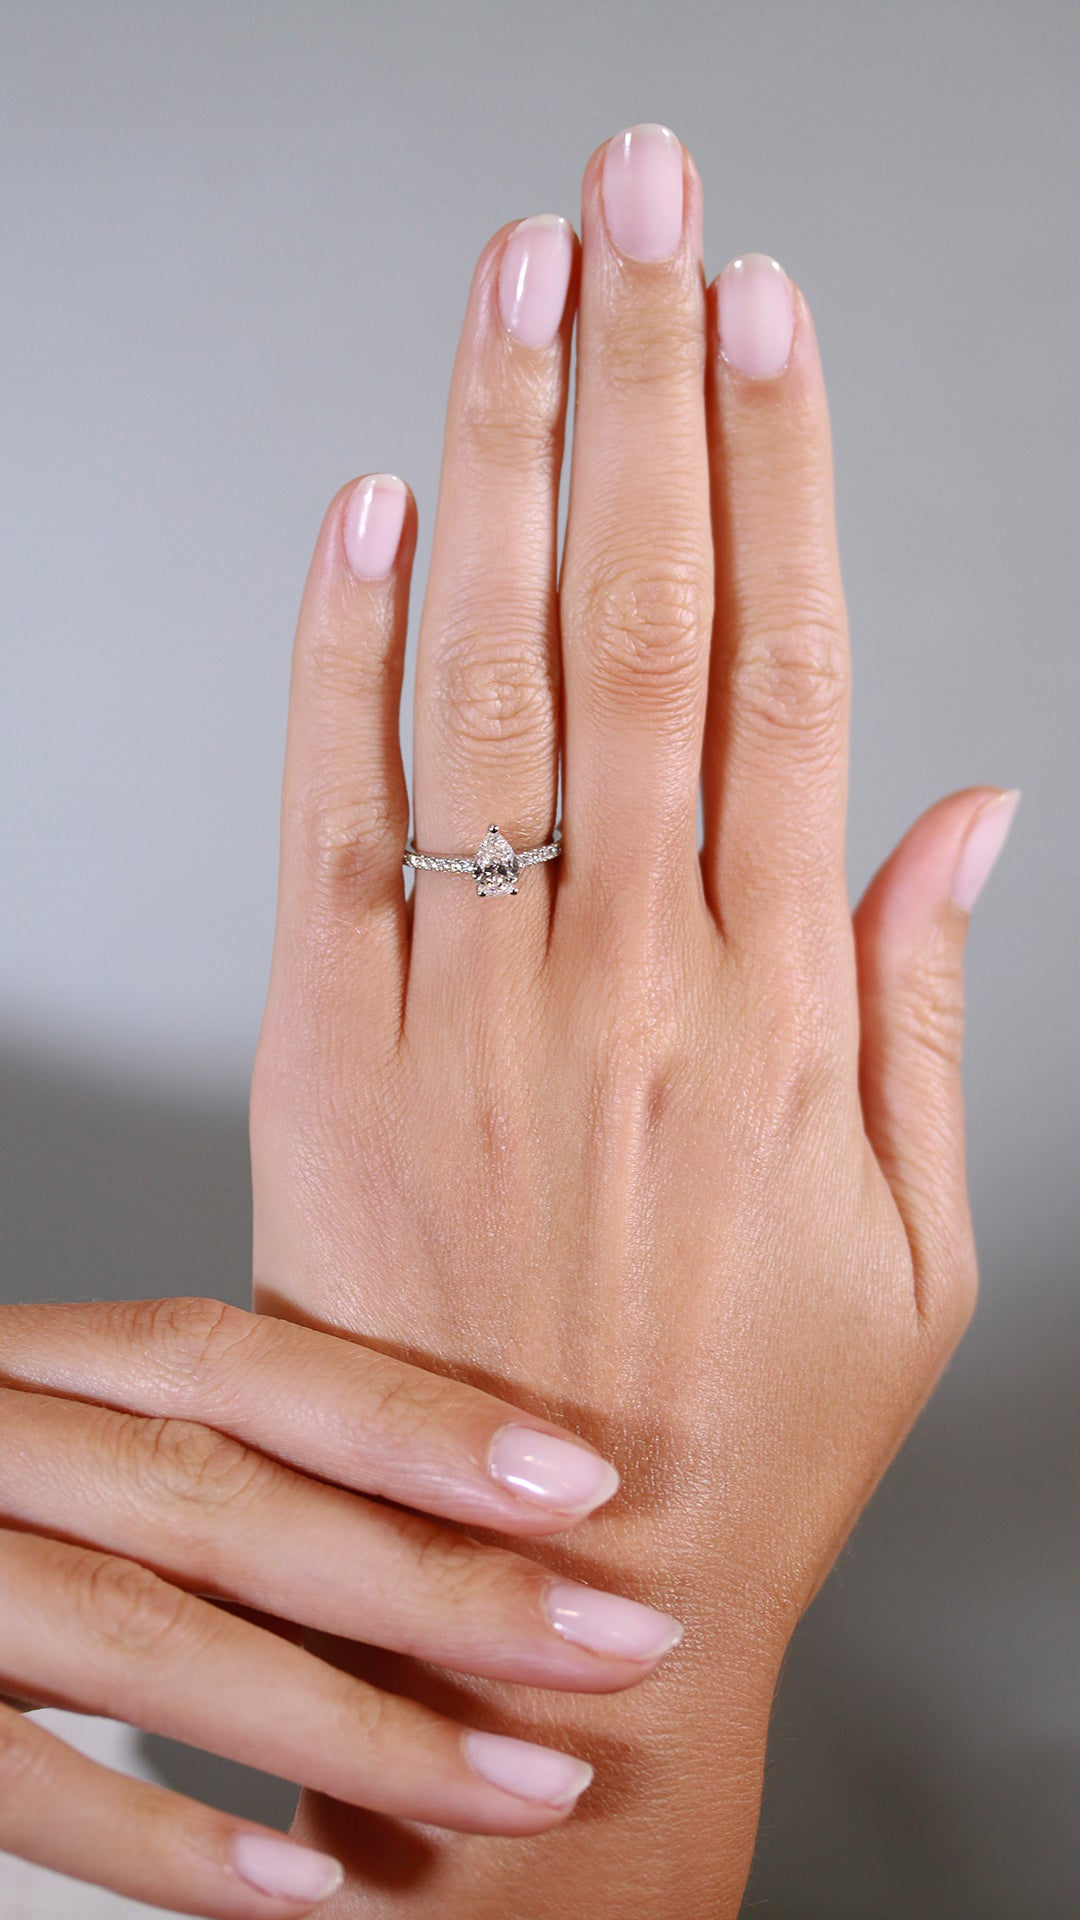 Ophelia Ring 18K White Gold